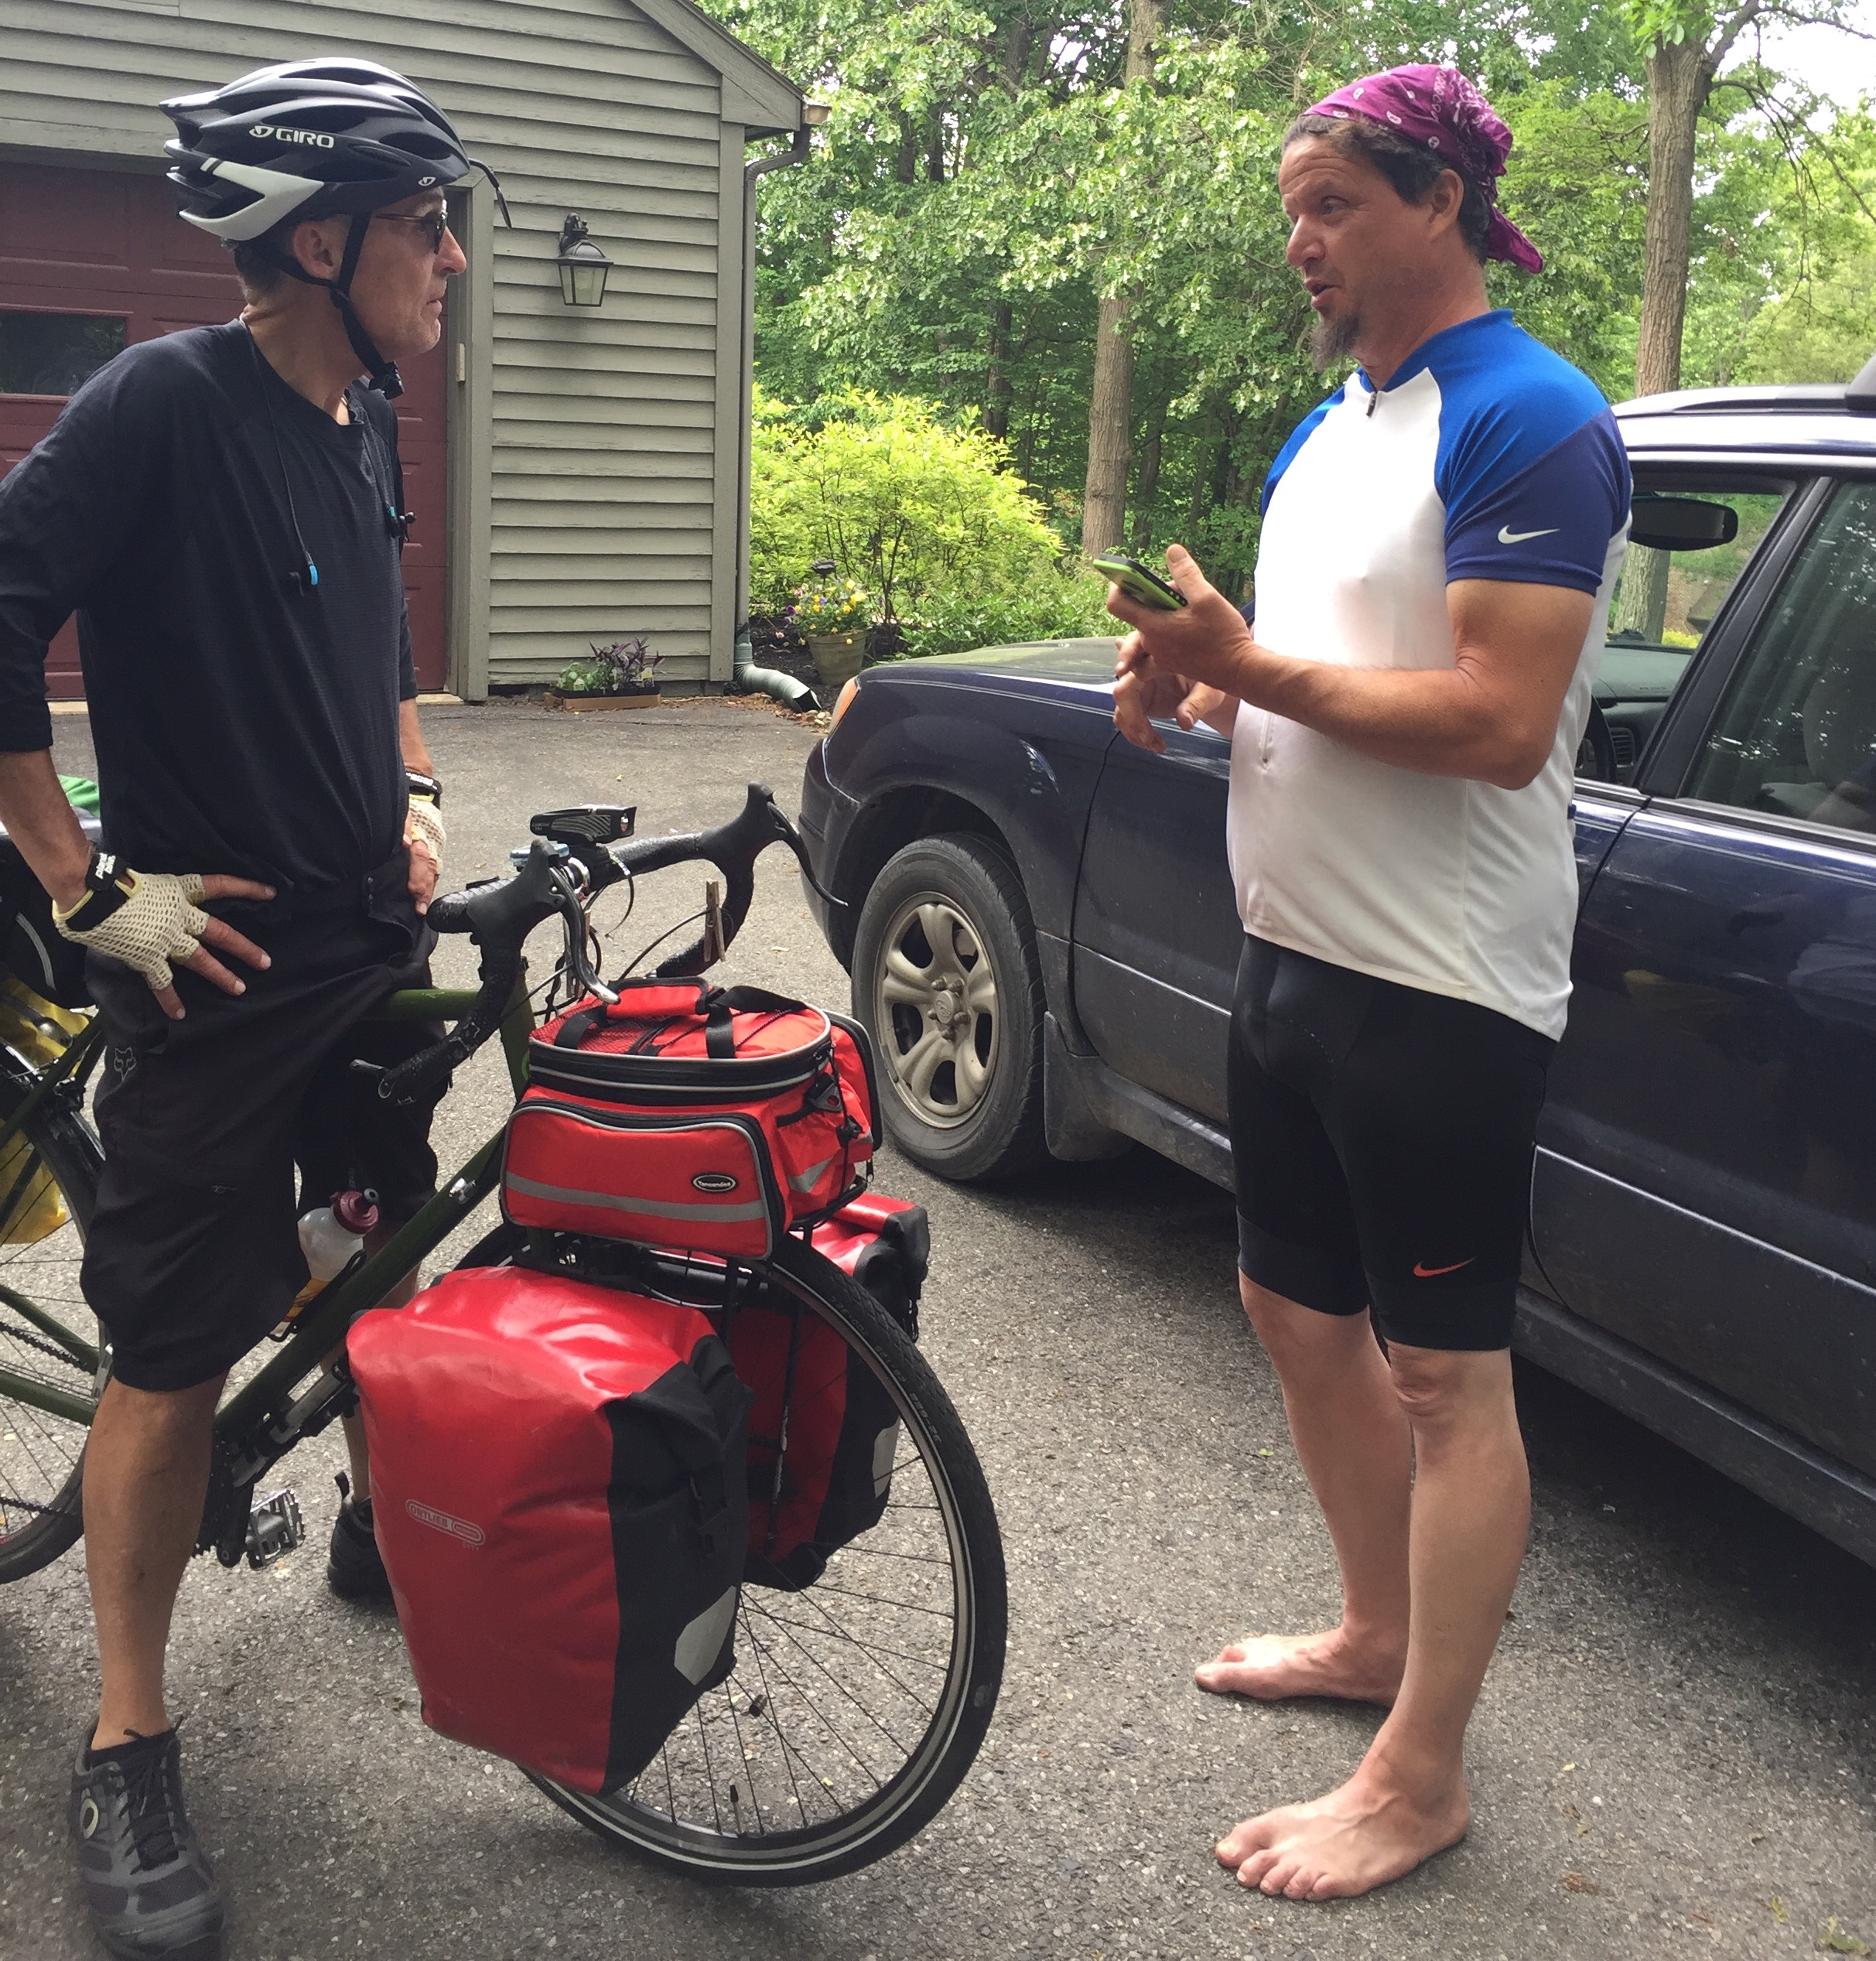 Dave and Shawn sharing biking stories. Dave assuring Shawn he WAS a knight in shining armor!